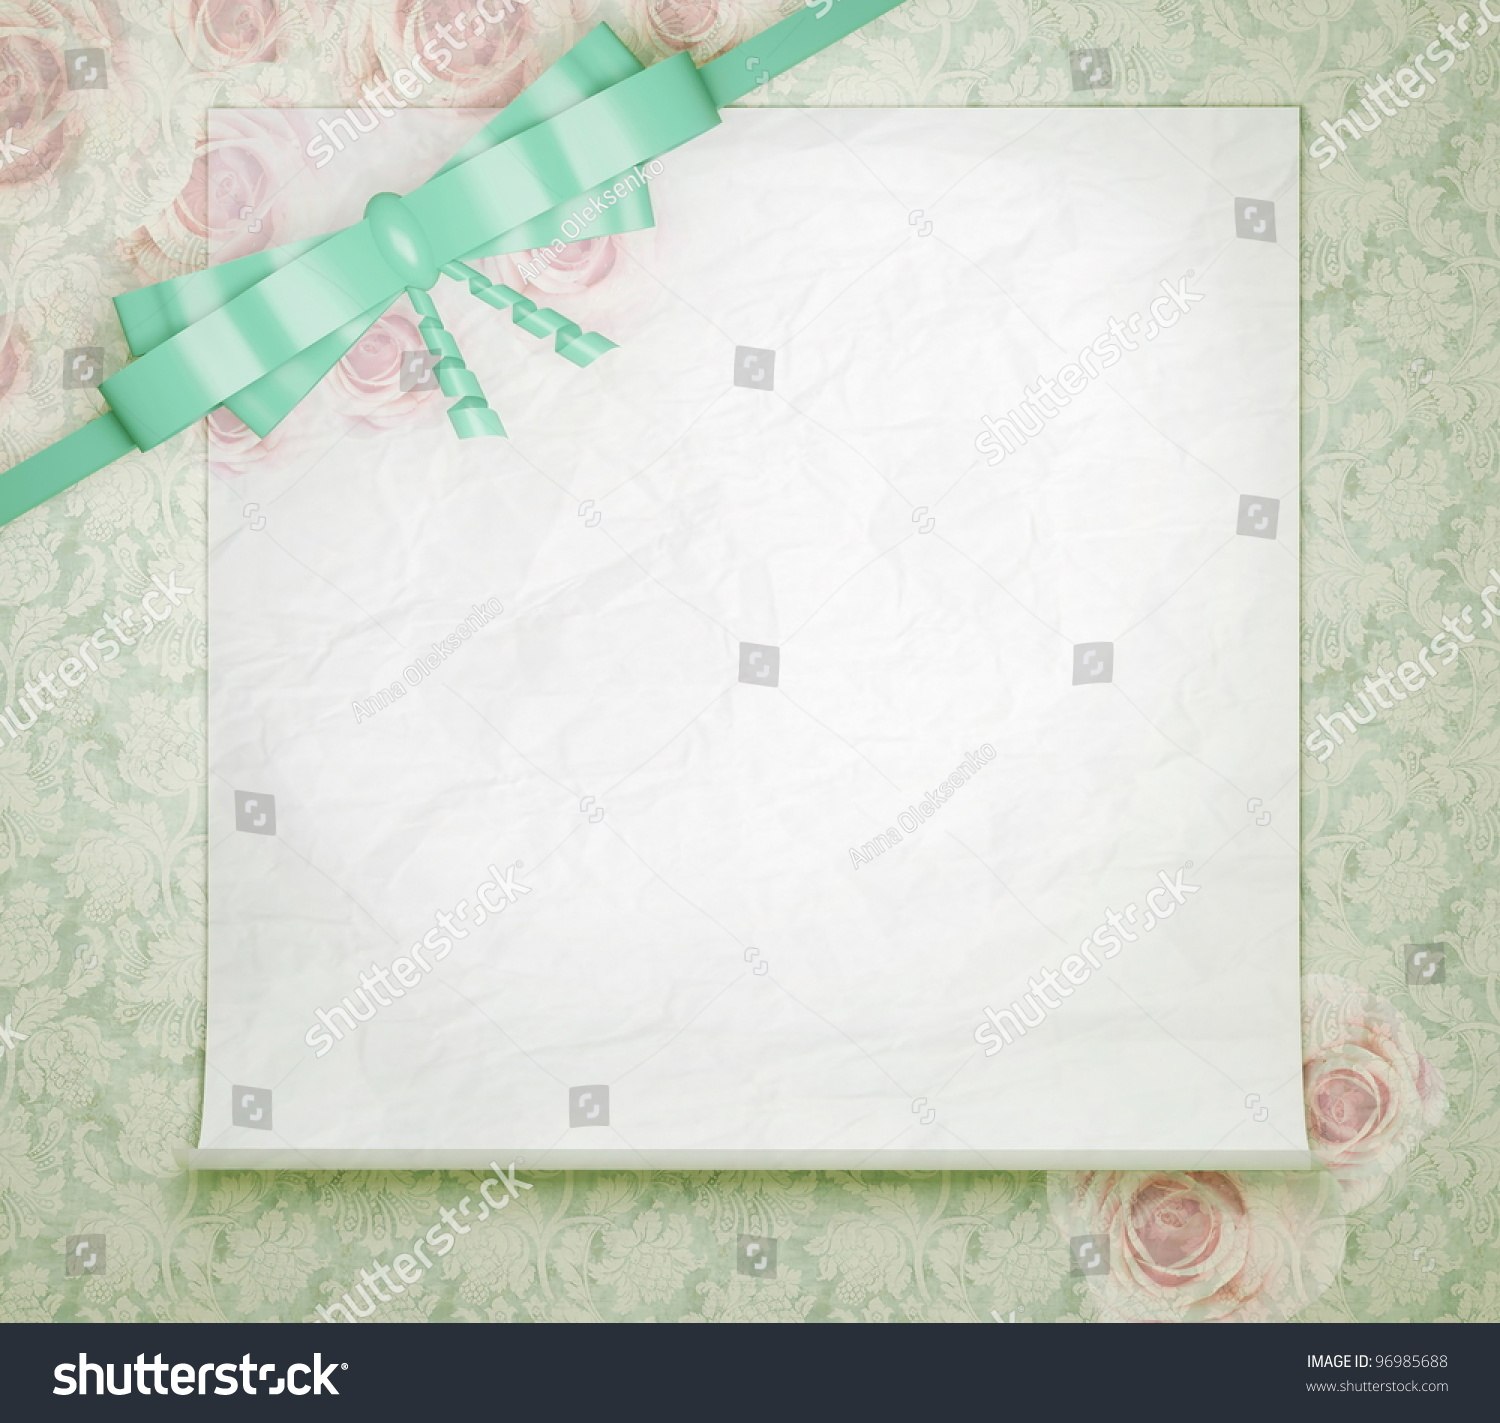 vintage wedding background roses floral green stock illustration 96985688 https www shutterstock com image illustration vintage wedding background roses floral green 96985688